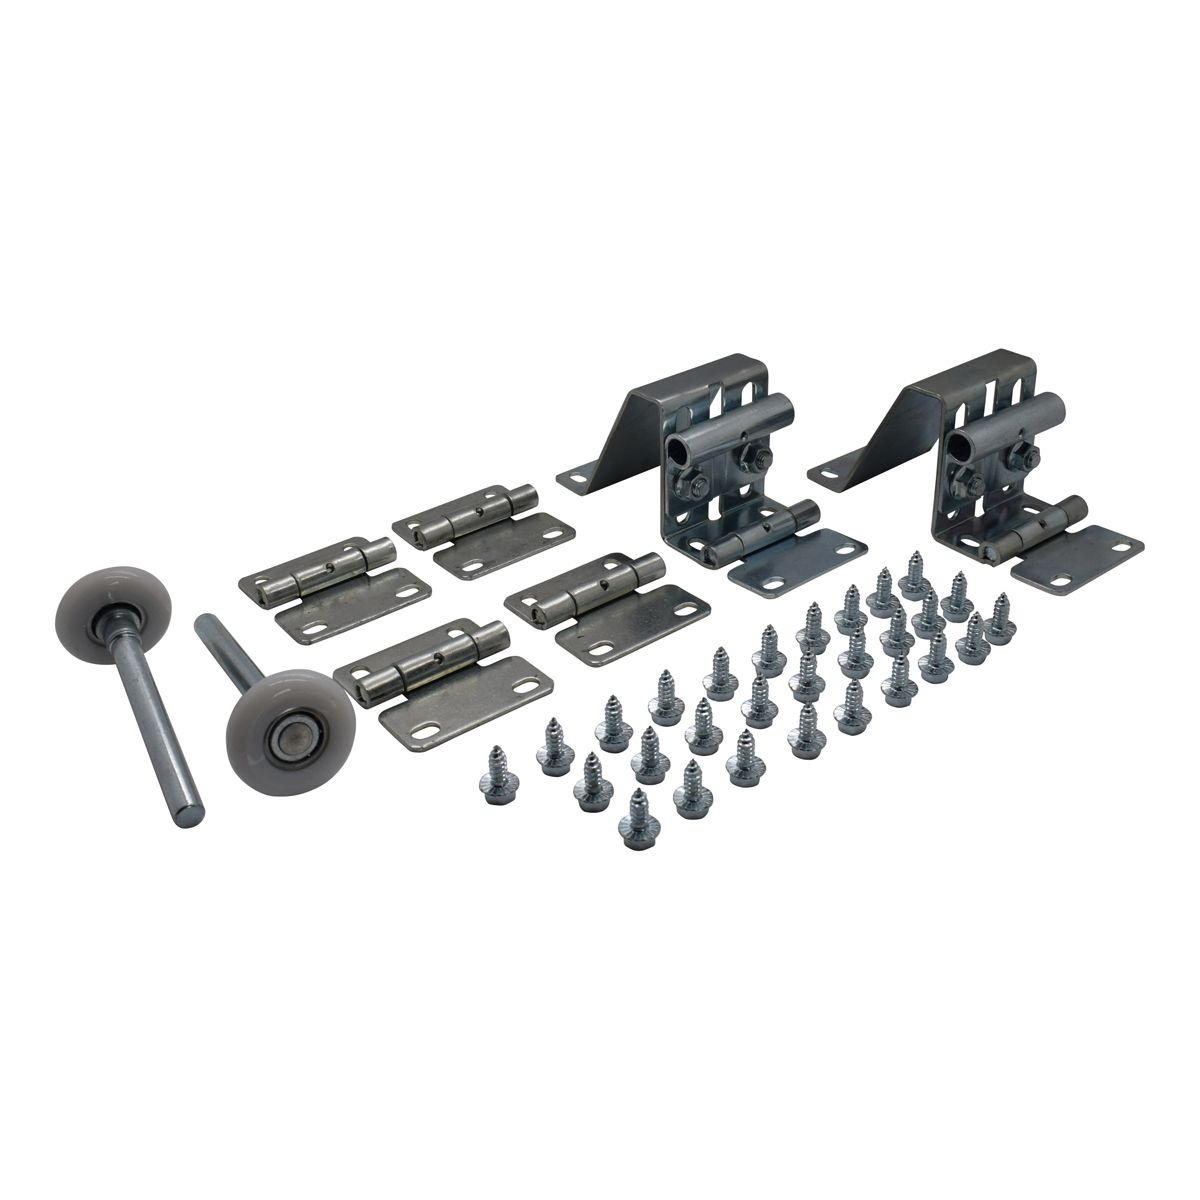 Hardware kits per section